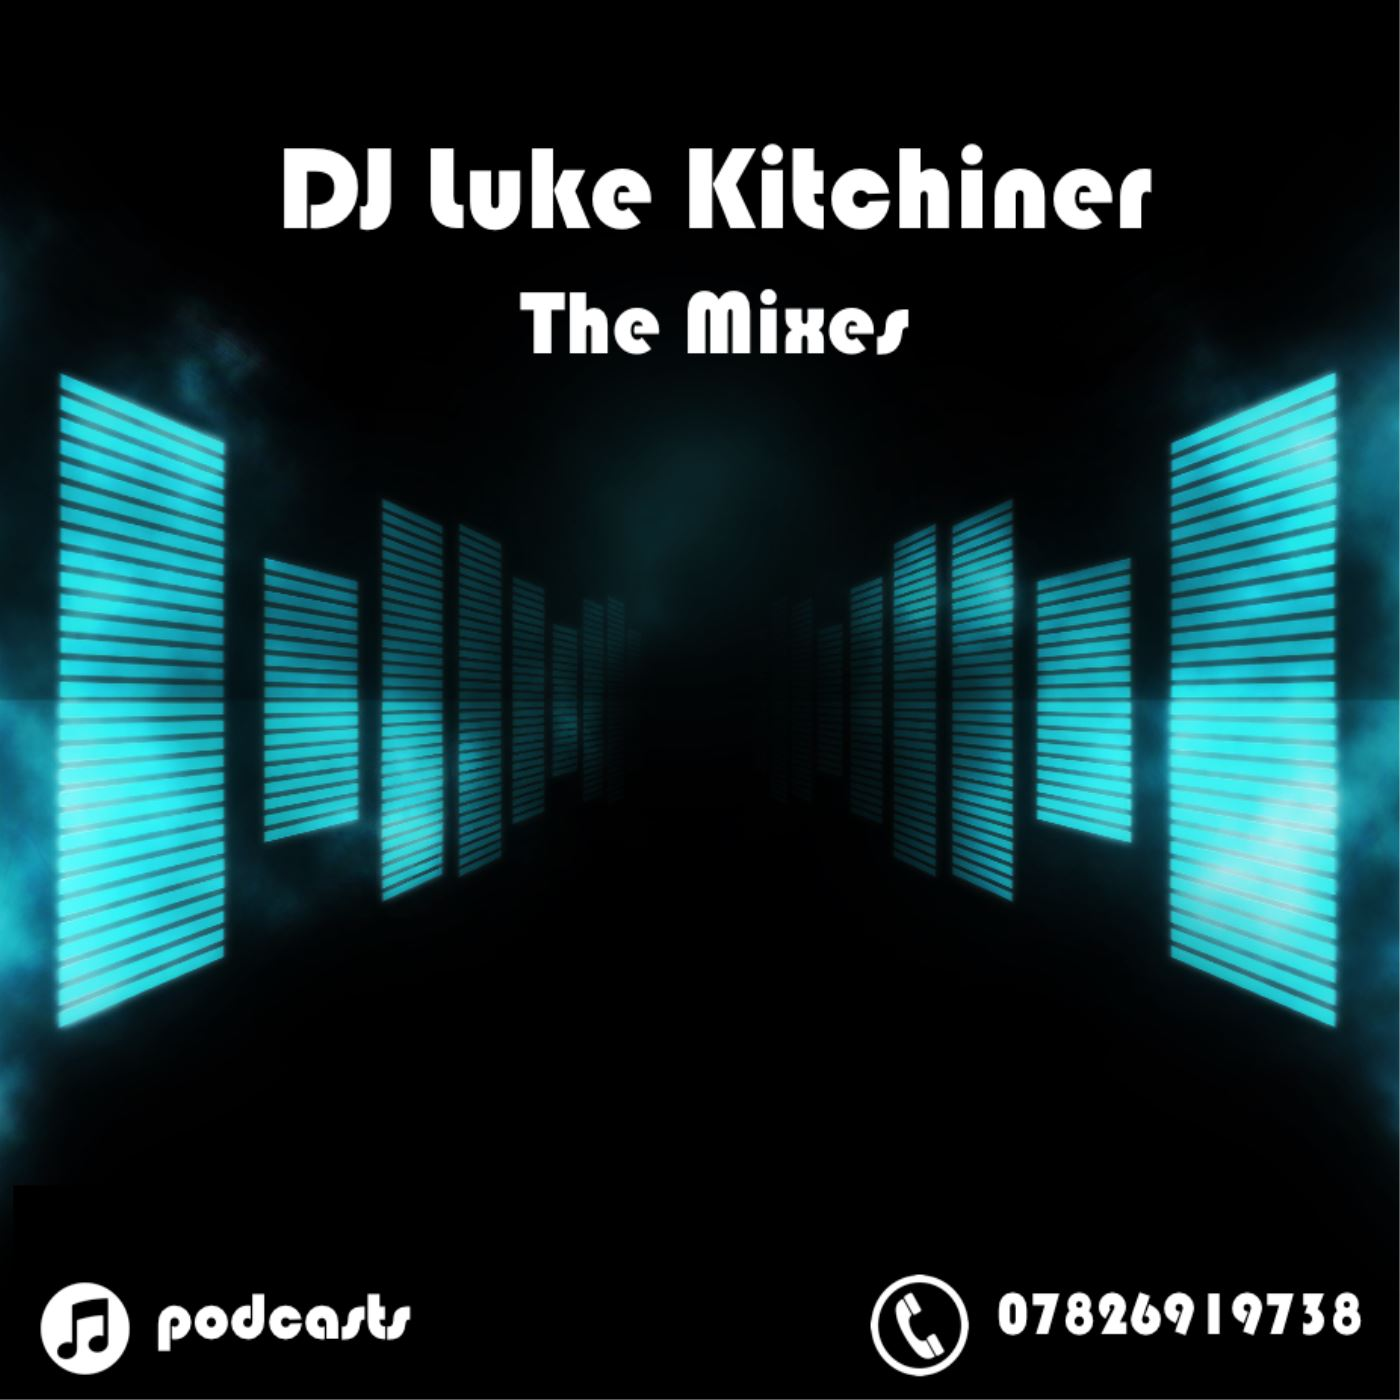 DJ Luke Kitchiner